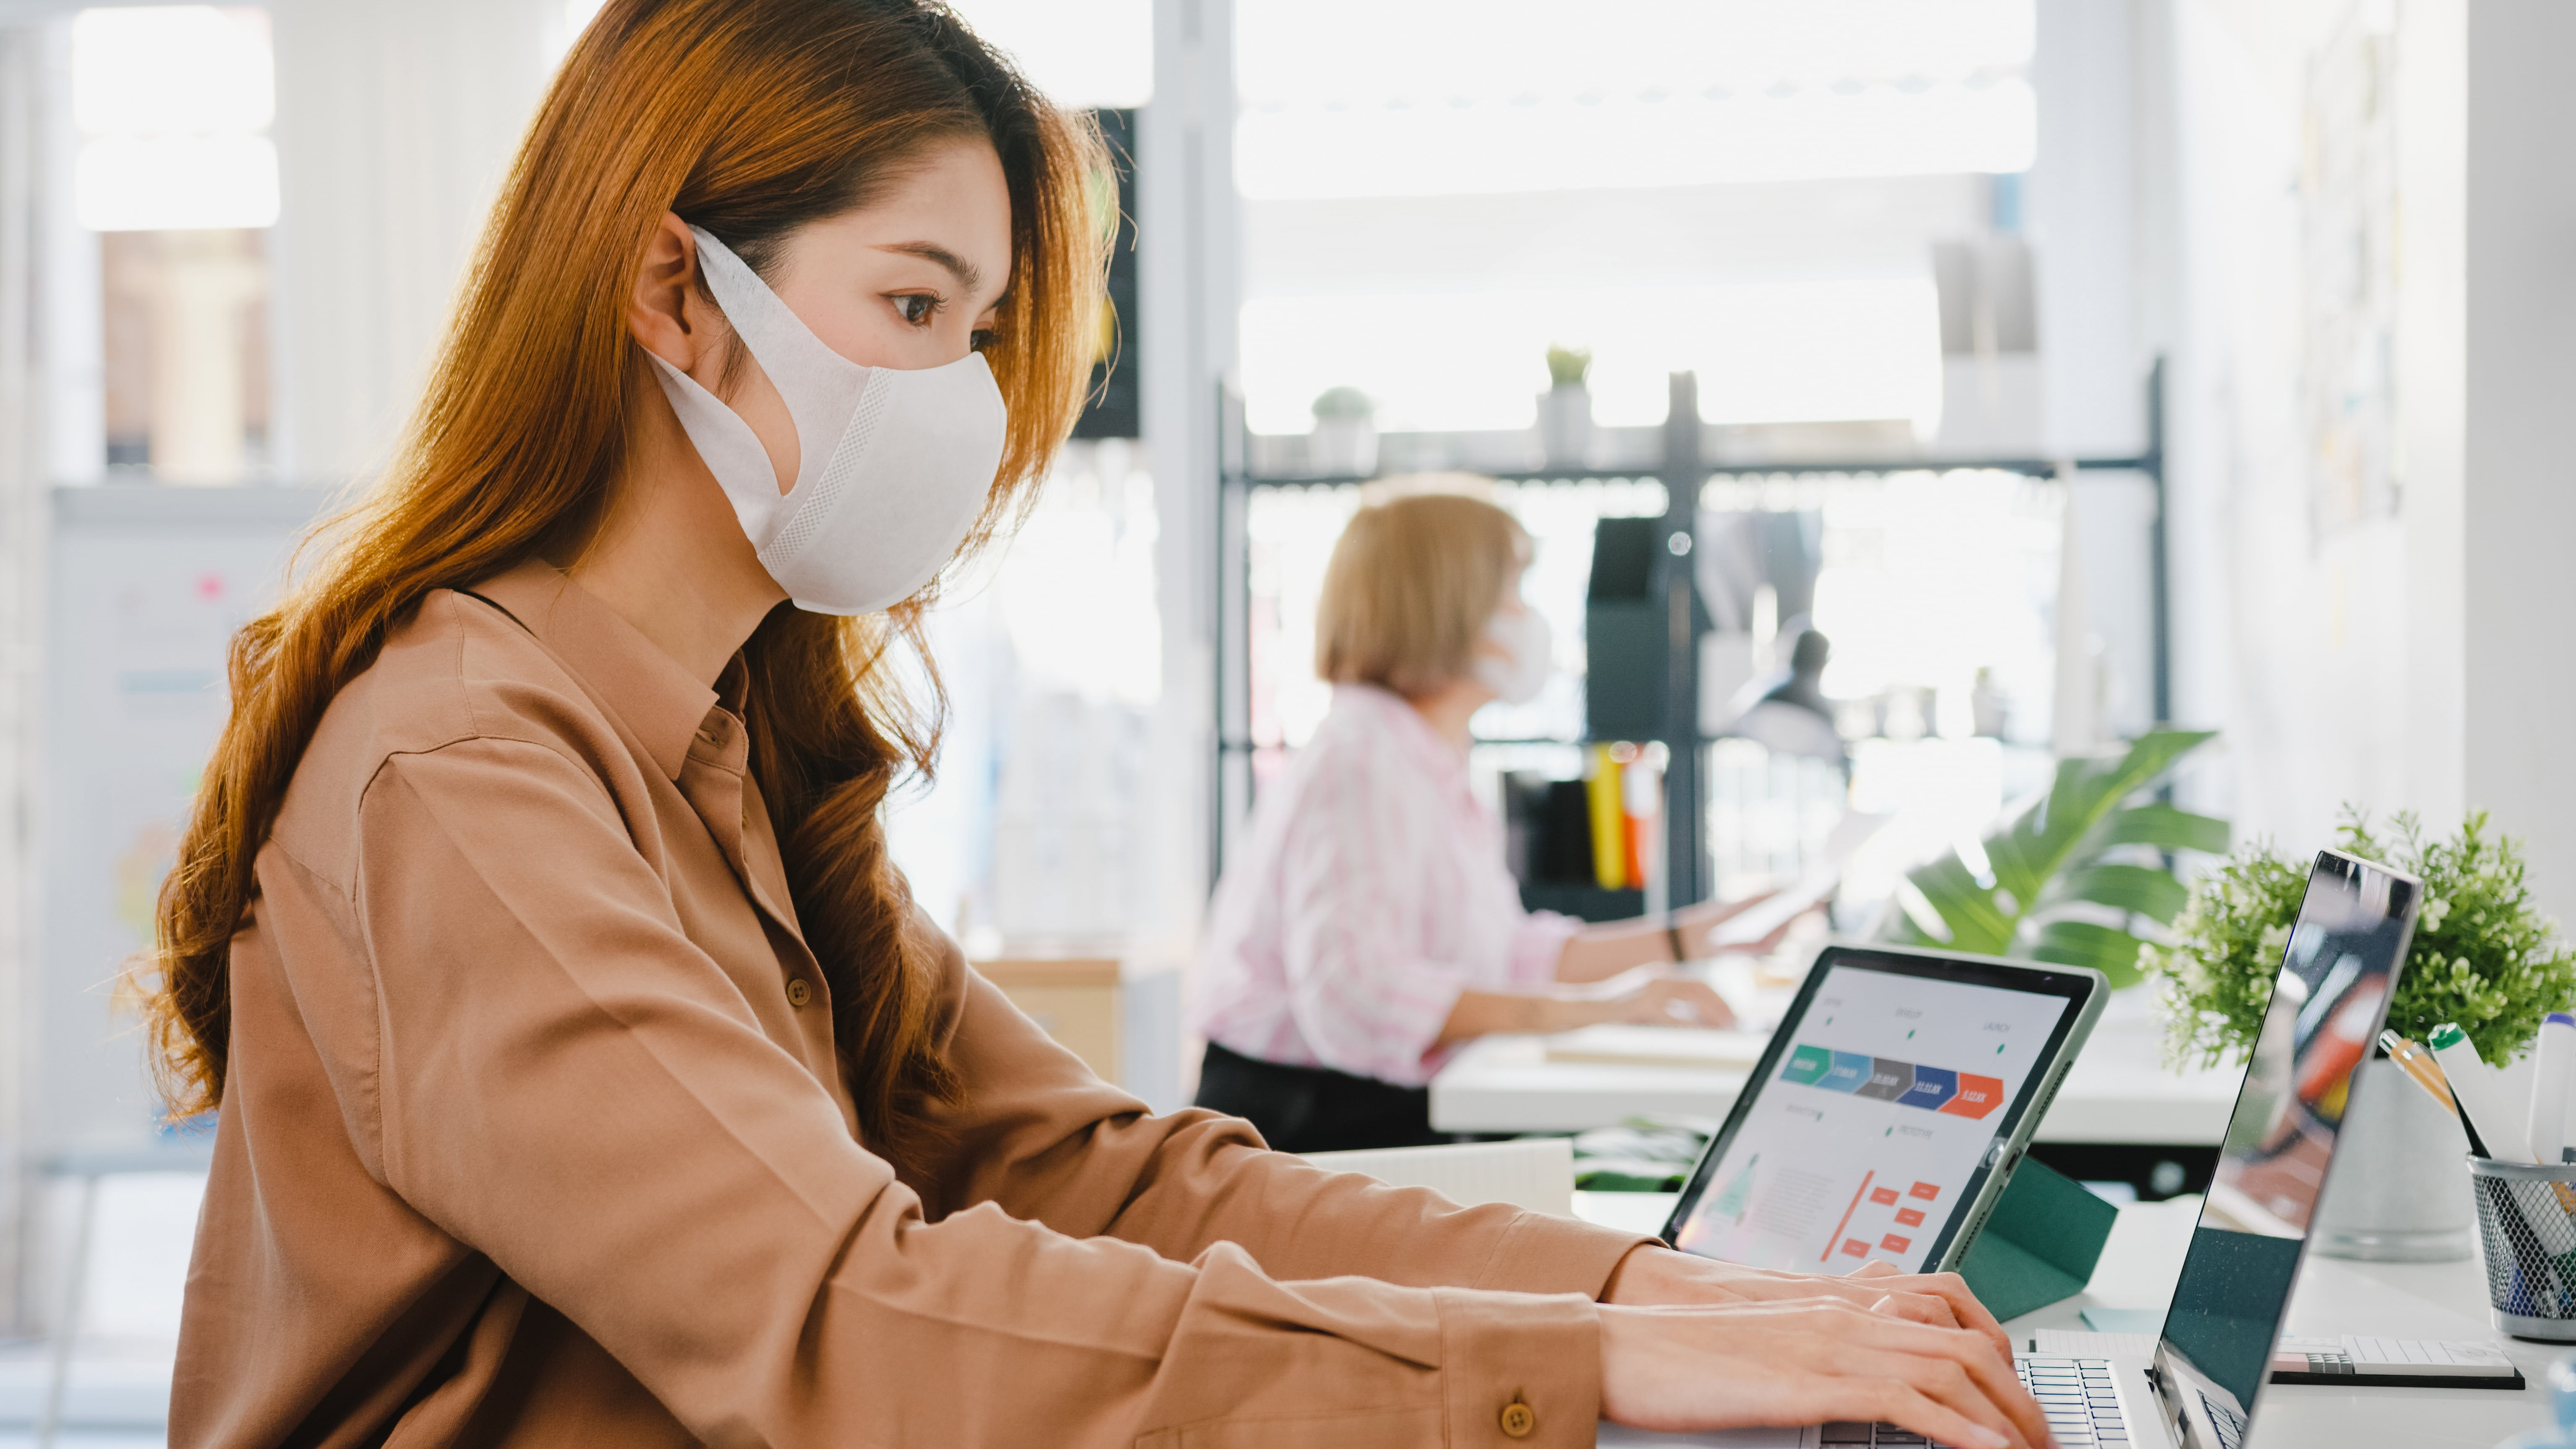 asia-businesswoman-entrepreneur-wearing-medical-face-mask-social-distancing-new-normal-situation-virus-prevention-while-using-laptop-back-work-office-min